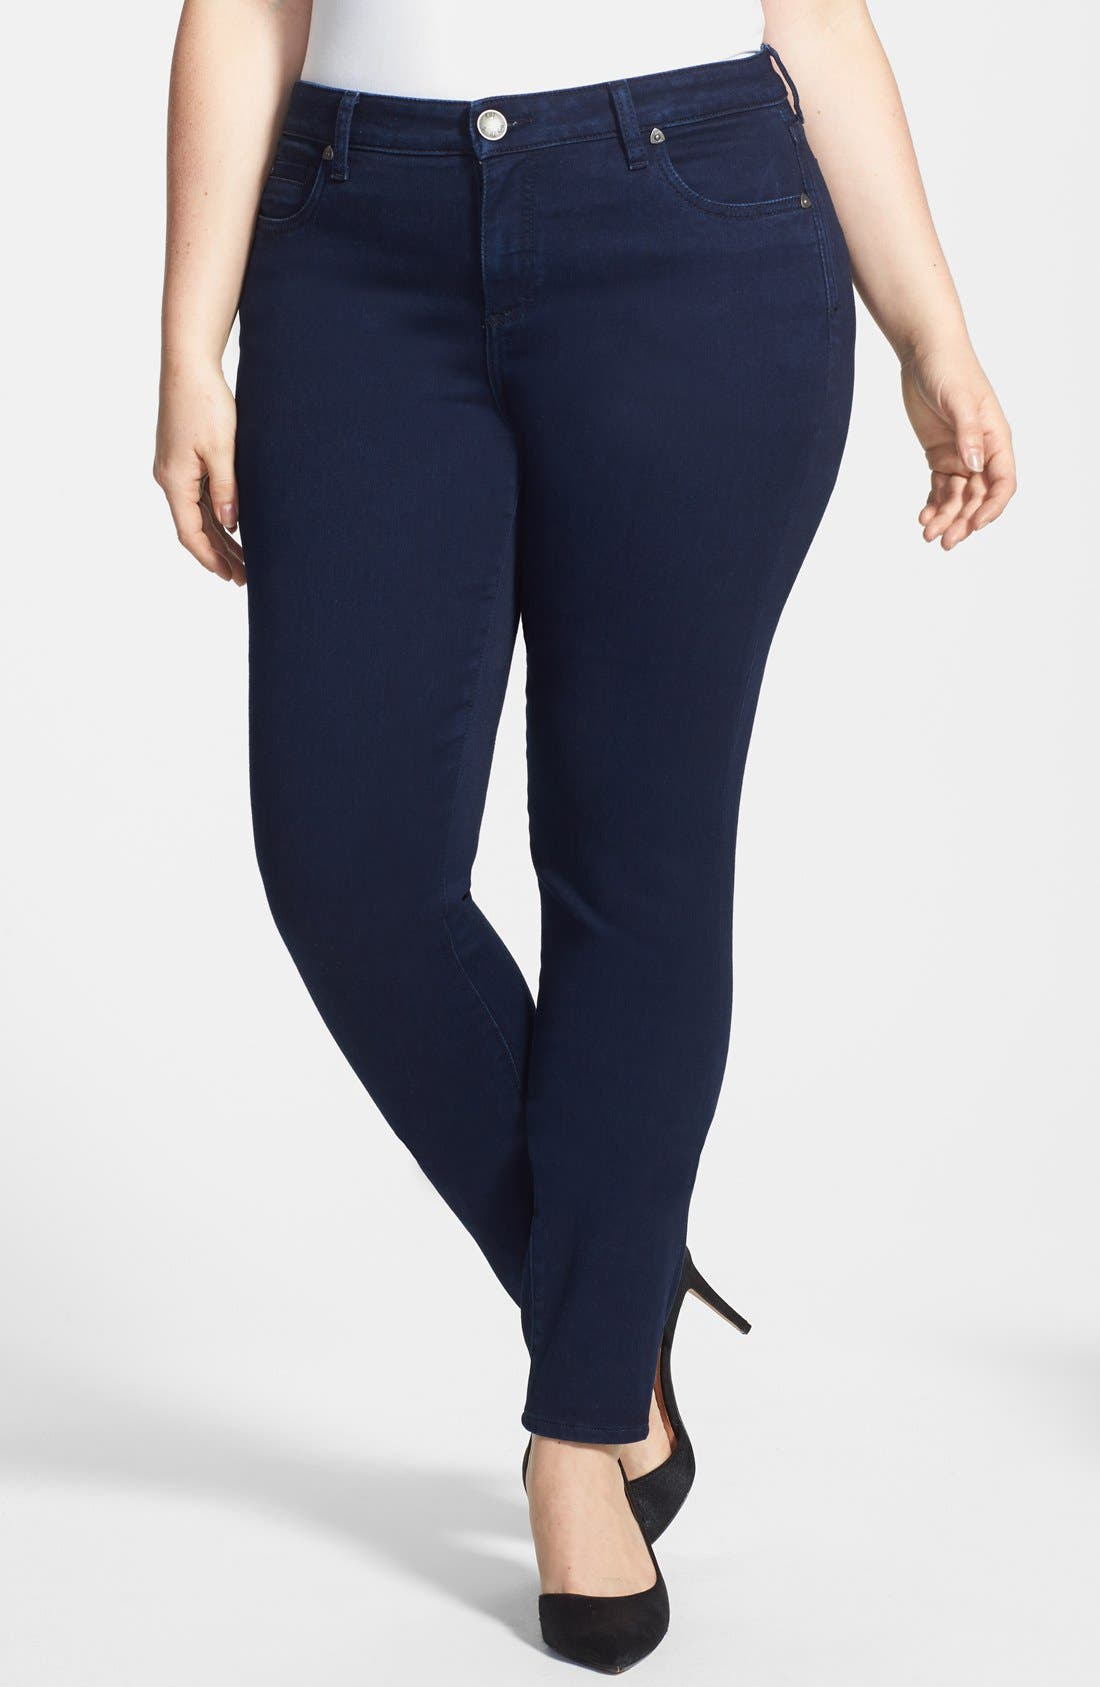 Main Image - KUT from the Kloth 'Diana' Stretch Skinny Jeans (Discrete) (Plus Size)